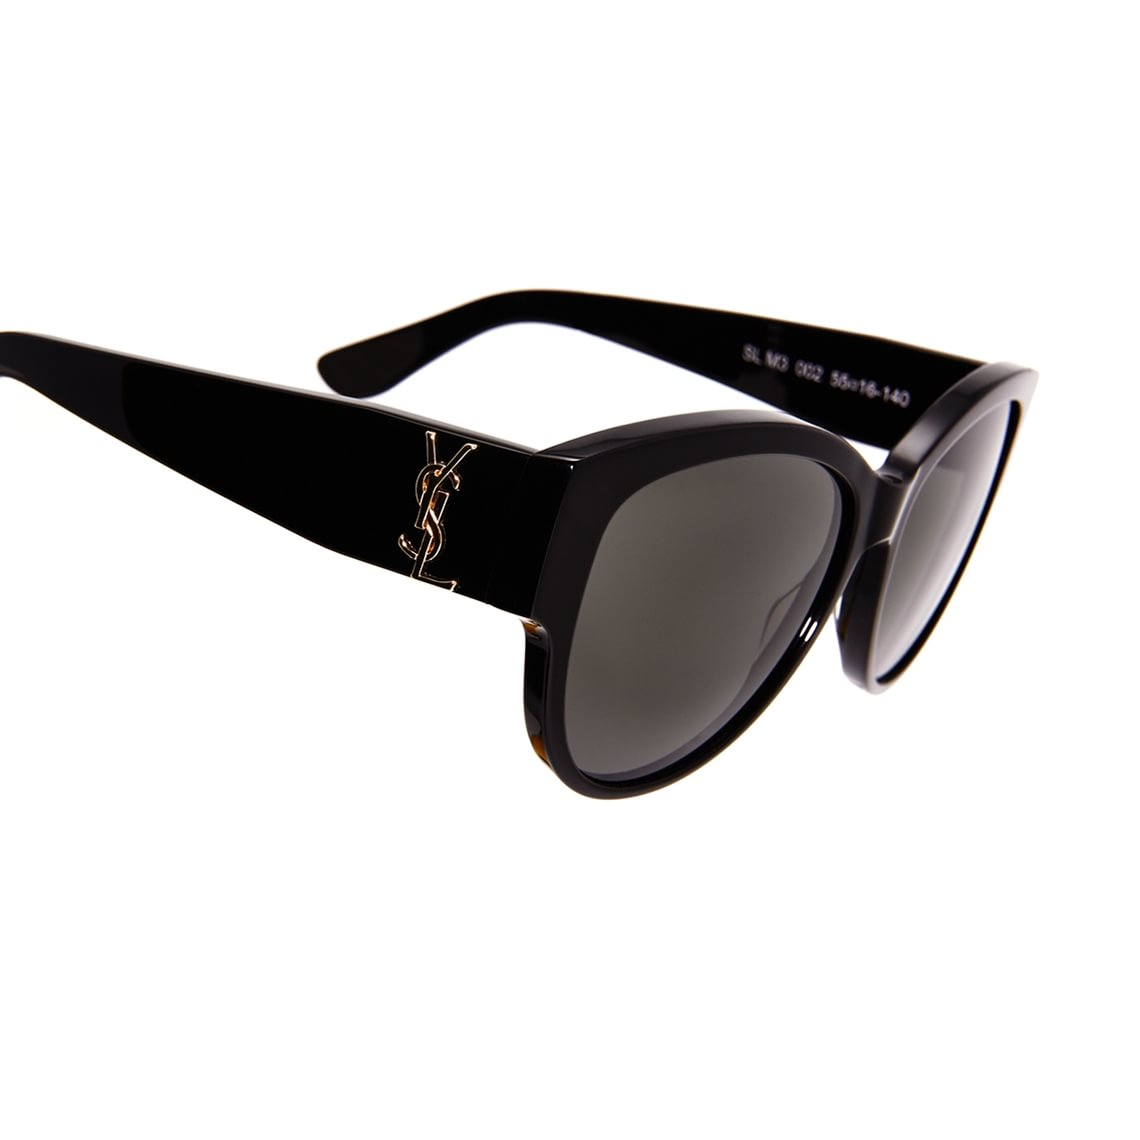 Saint Laurent SL M3 002 5516